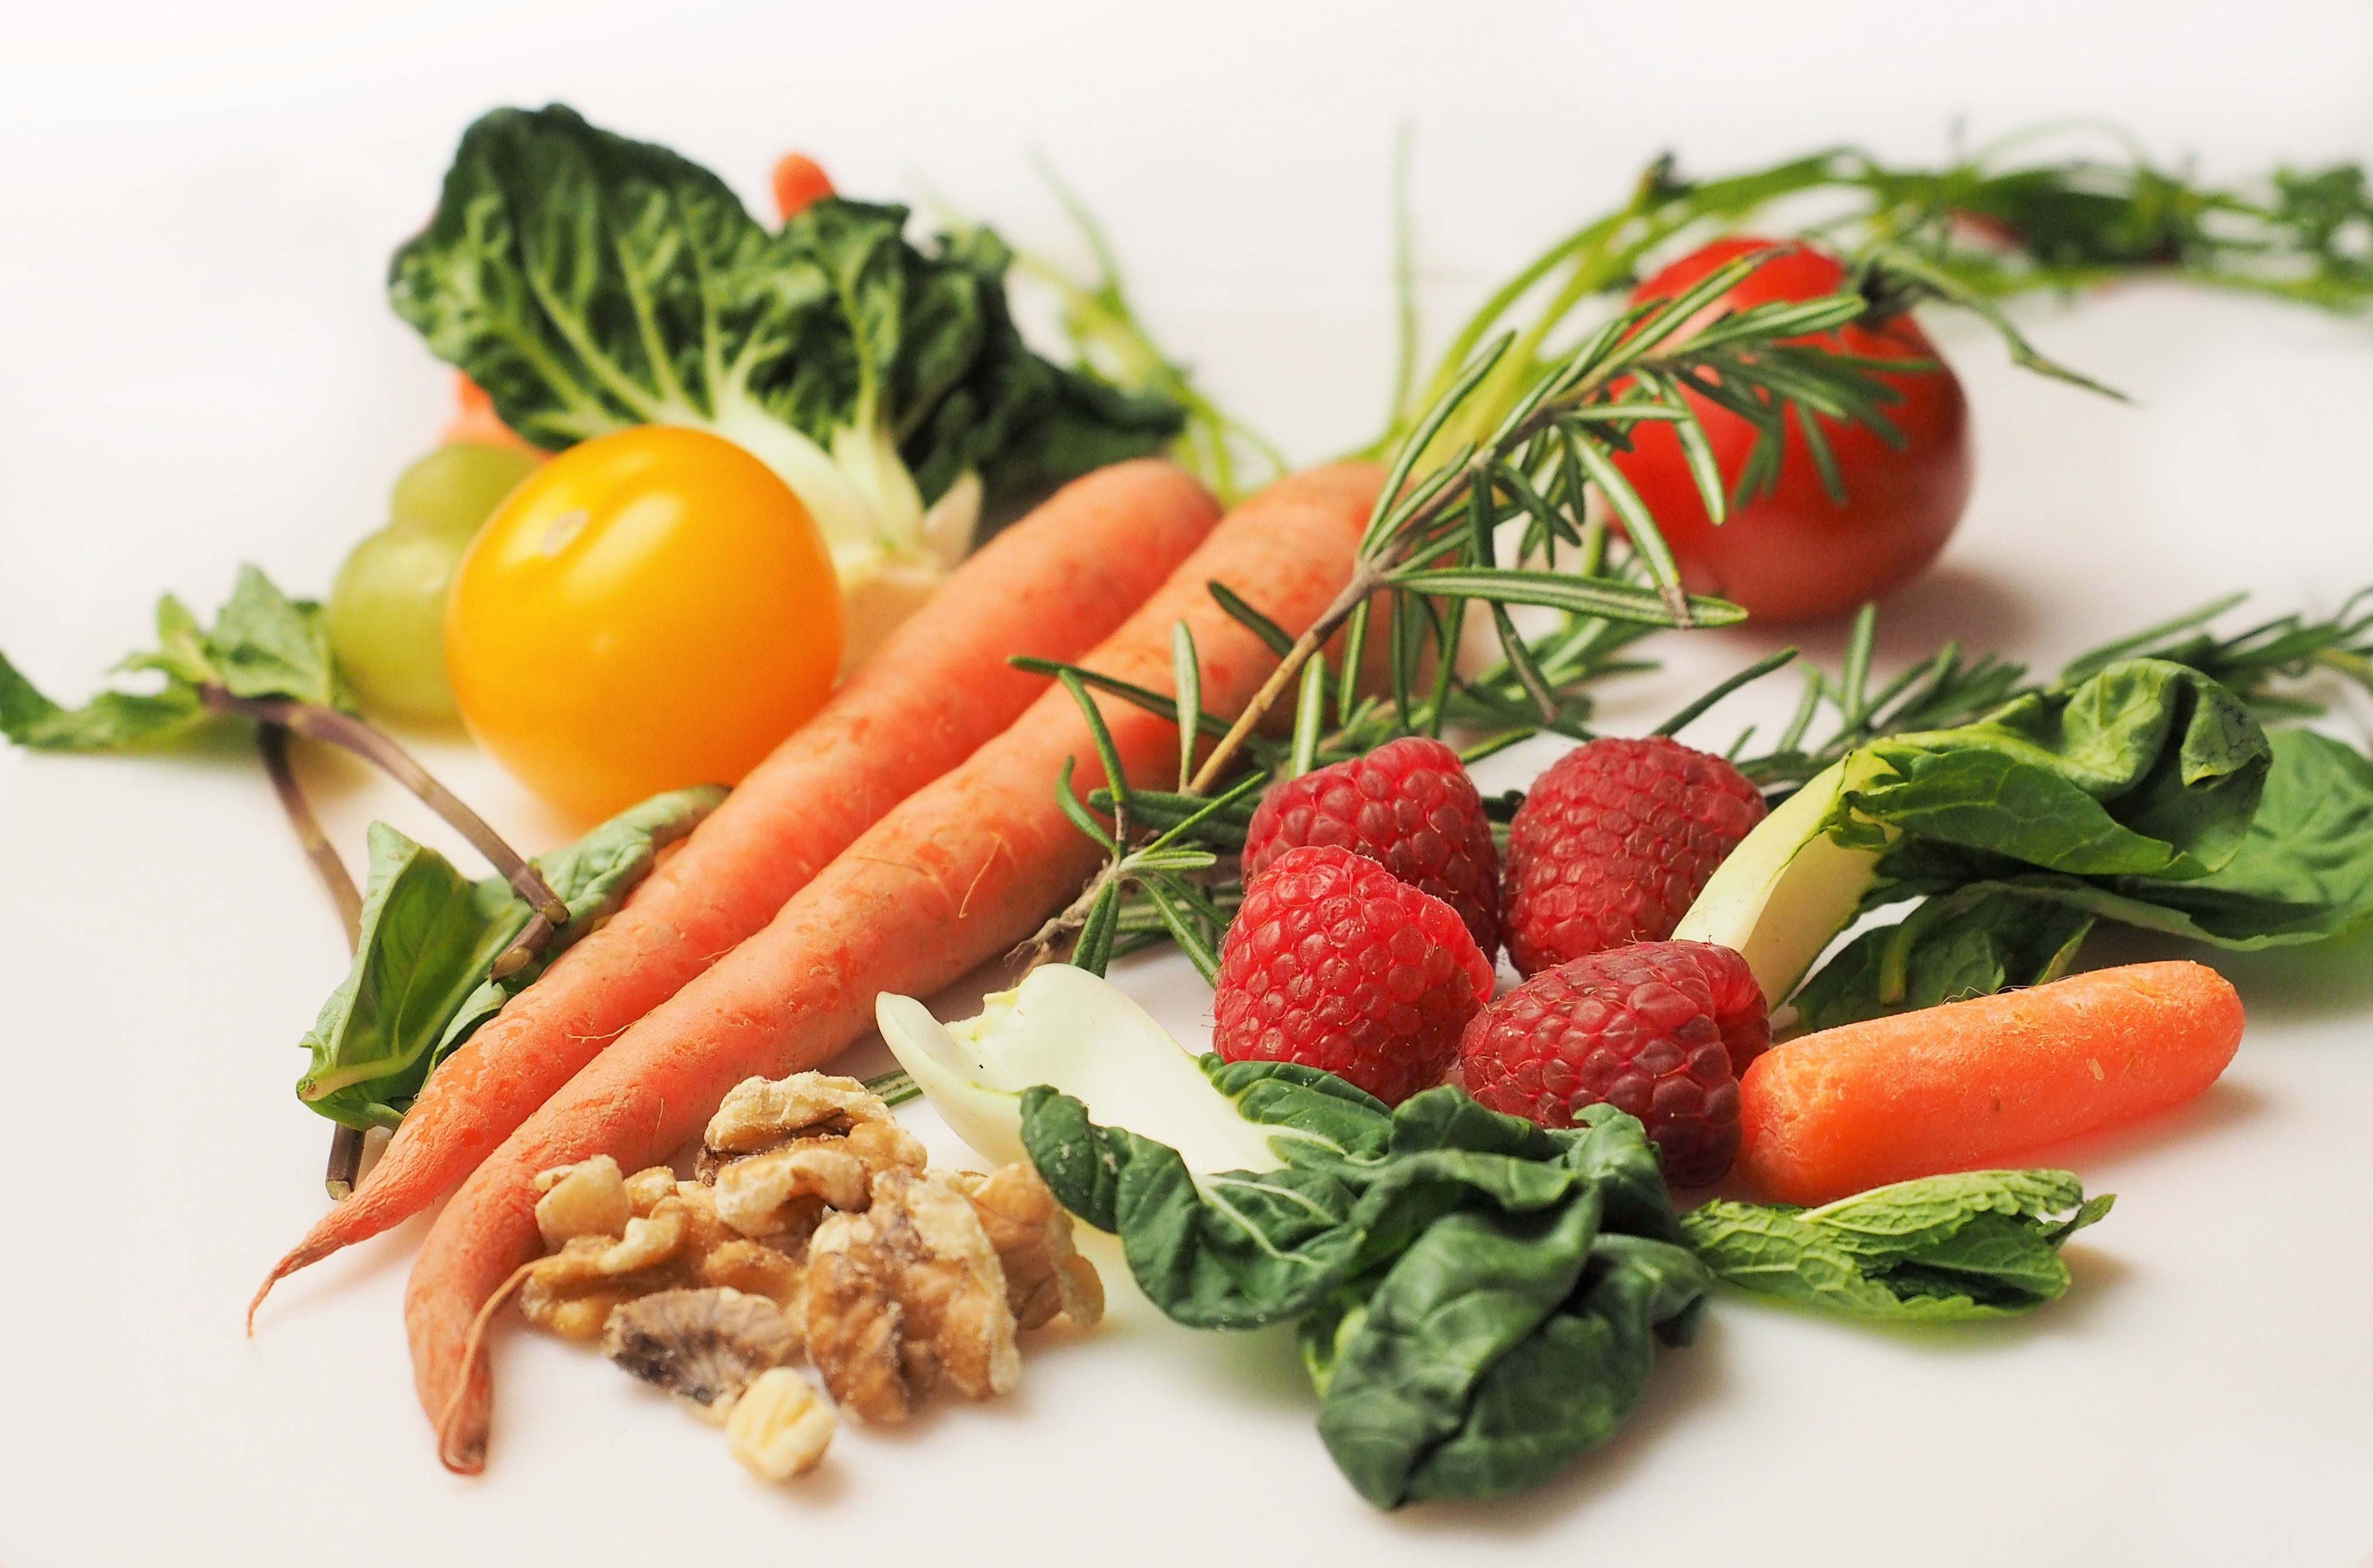 Carrots Tomatoes Vegetables and Other Fruits